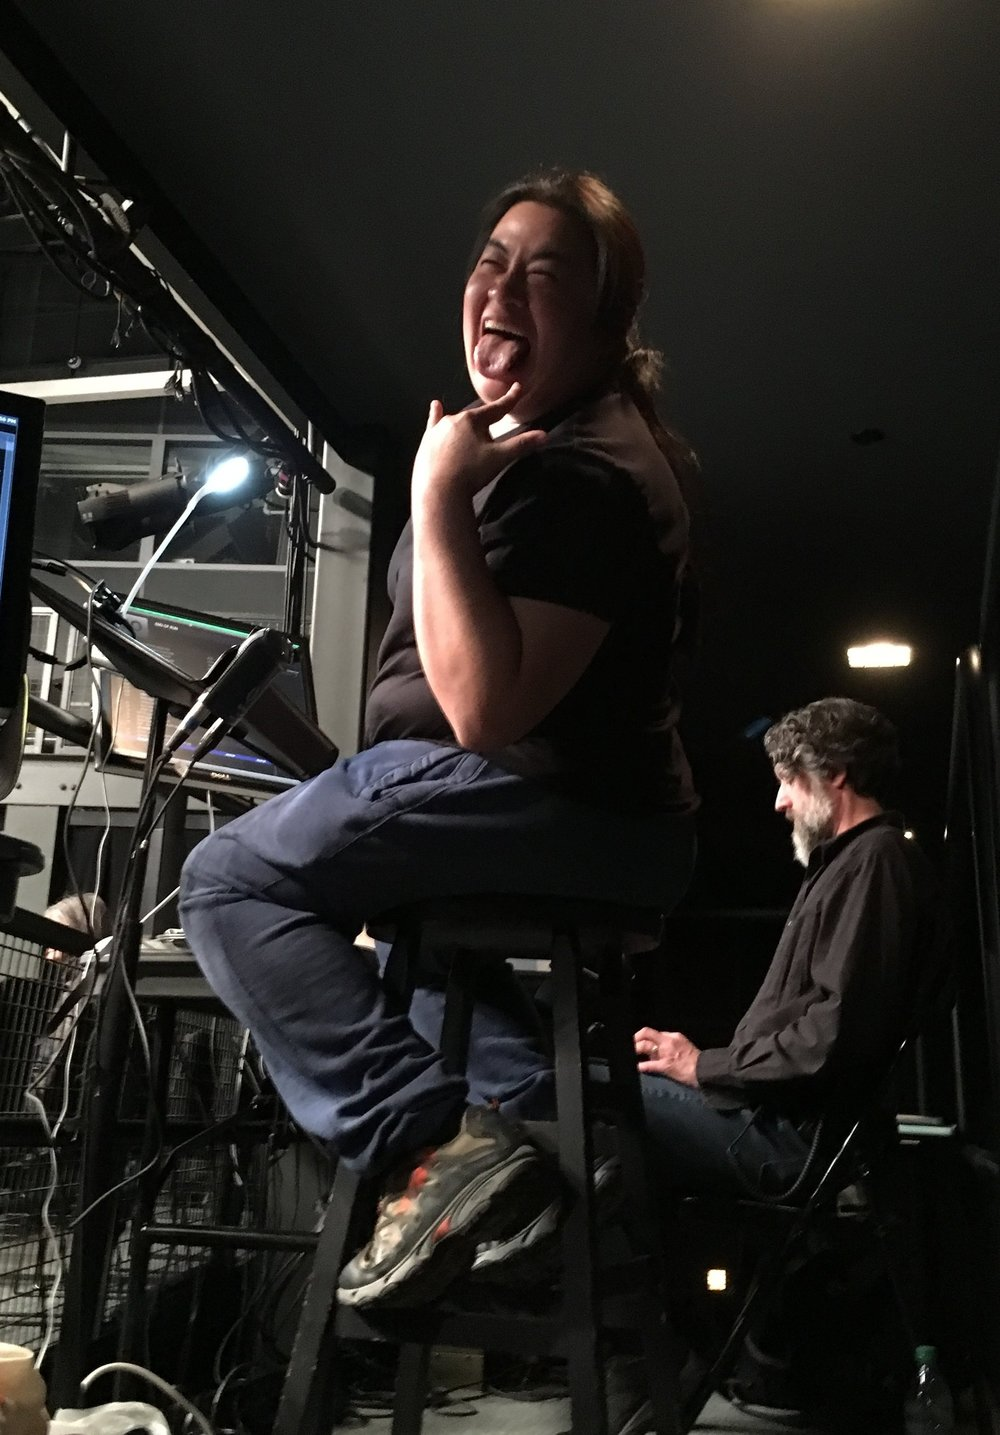 Valerie Oliveiro, Stage Manager